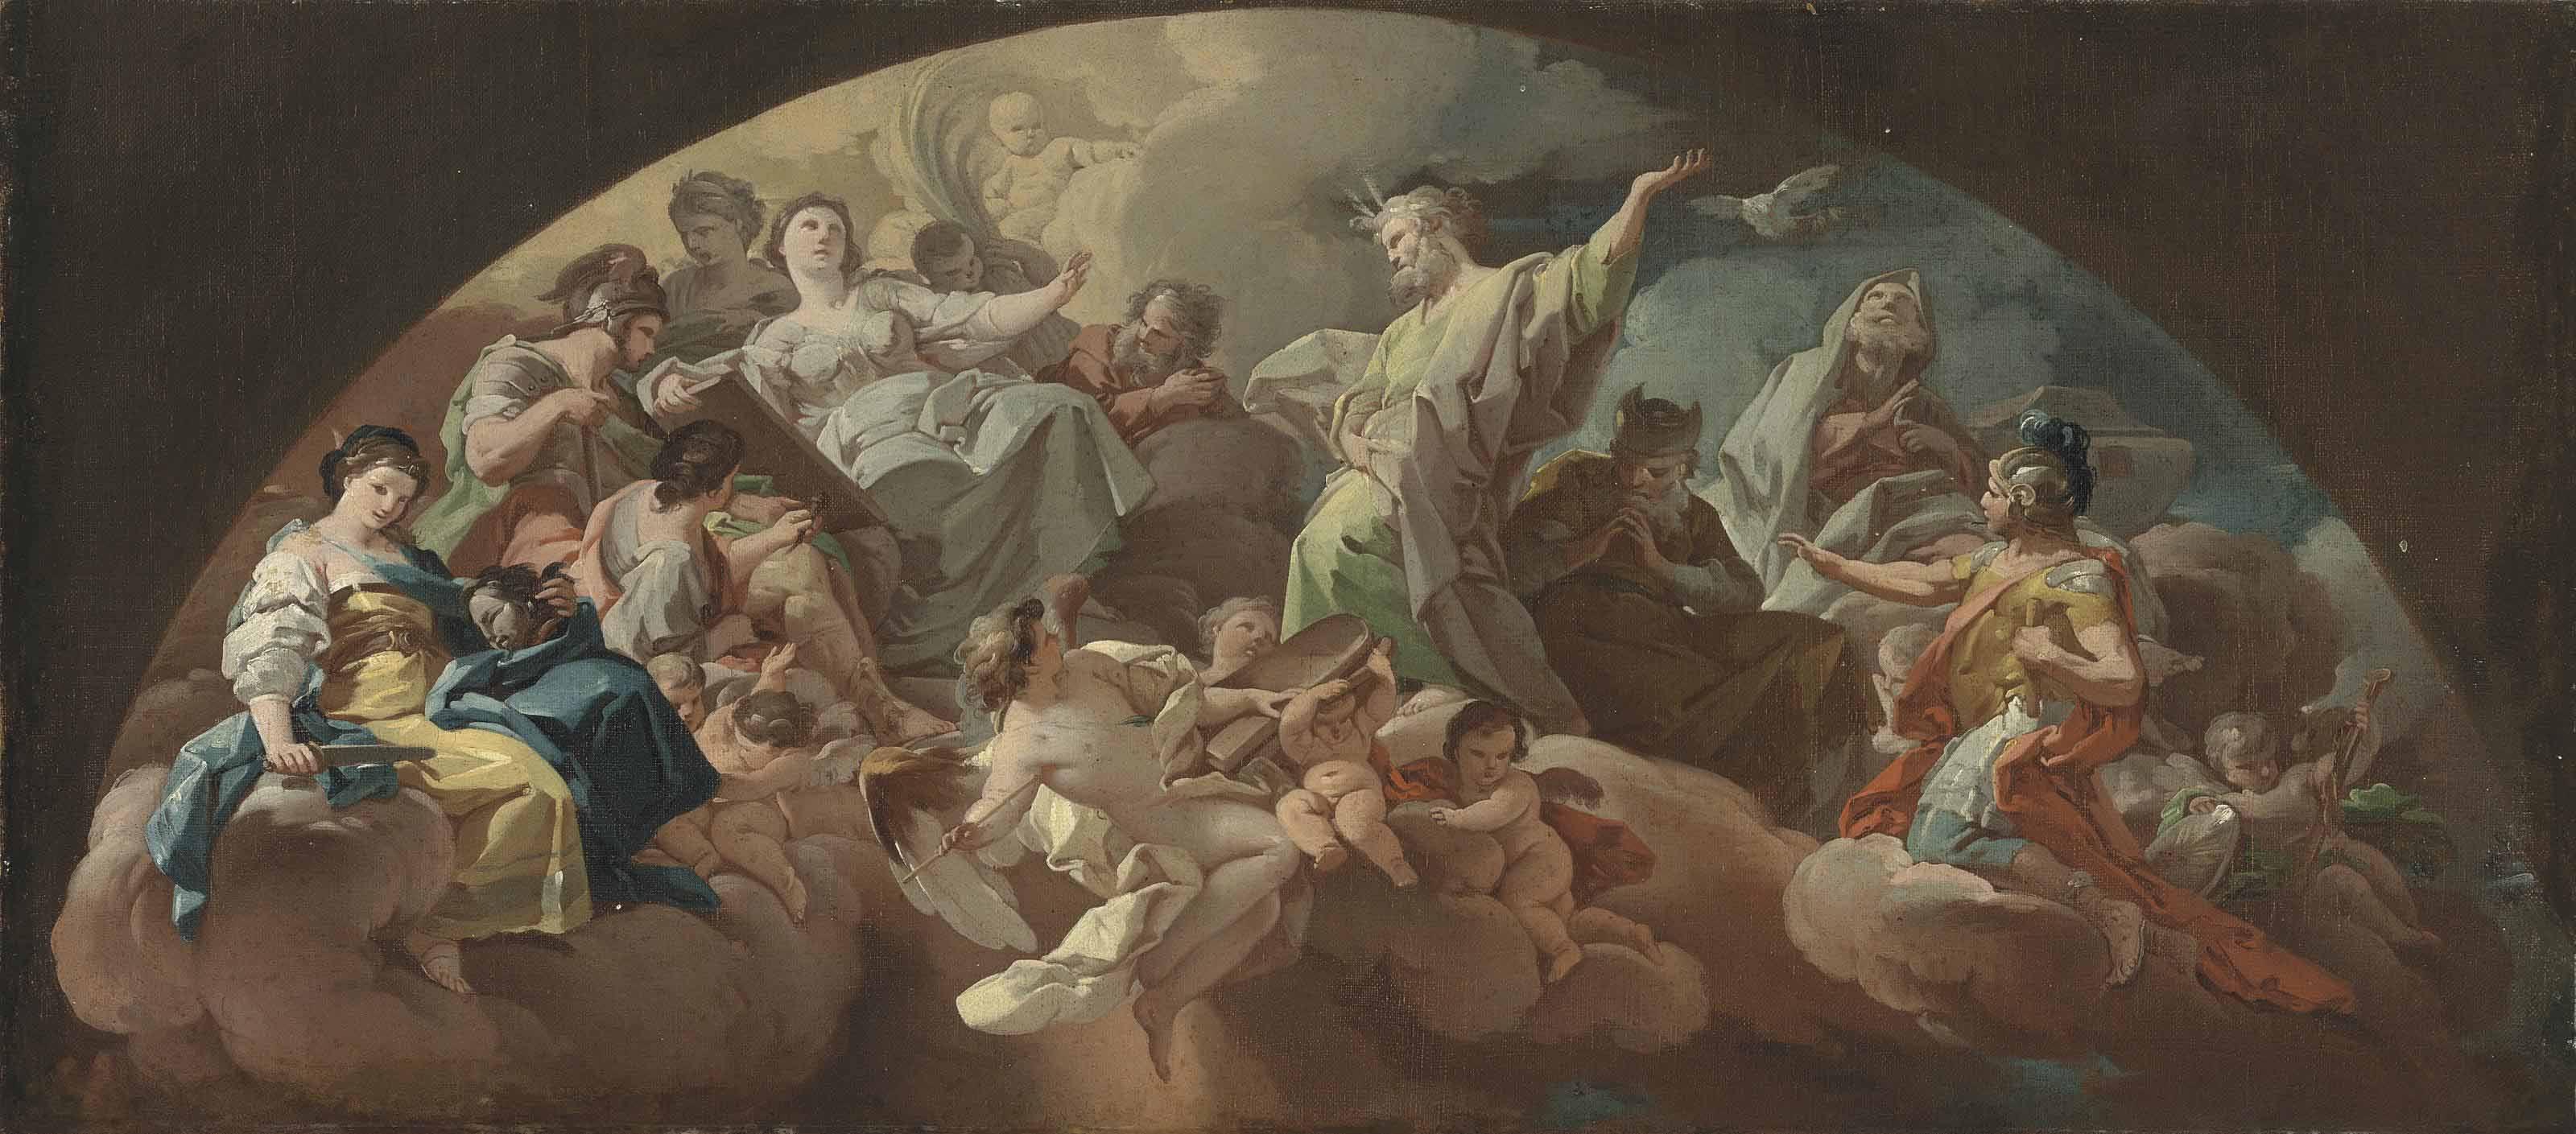 An allegory of the Old Testament